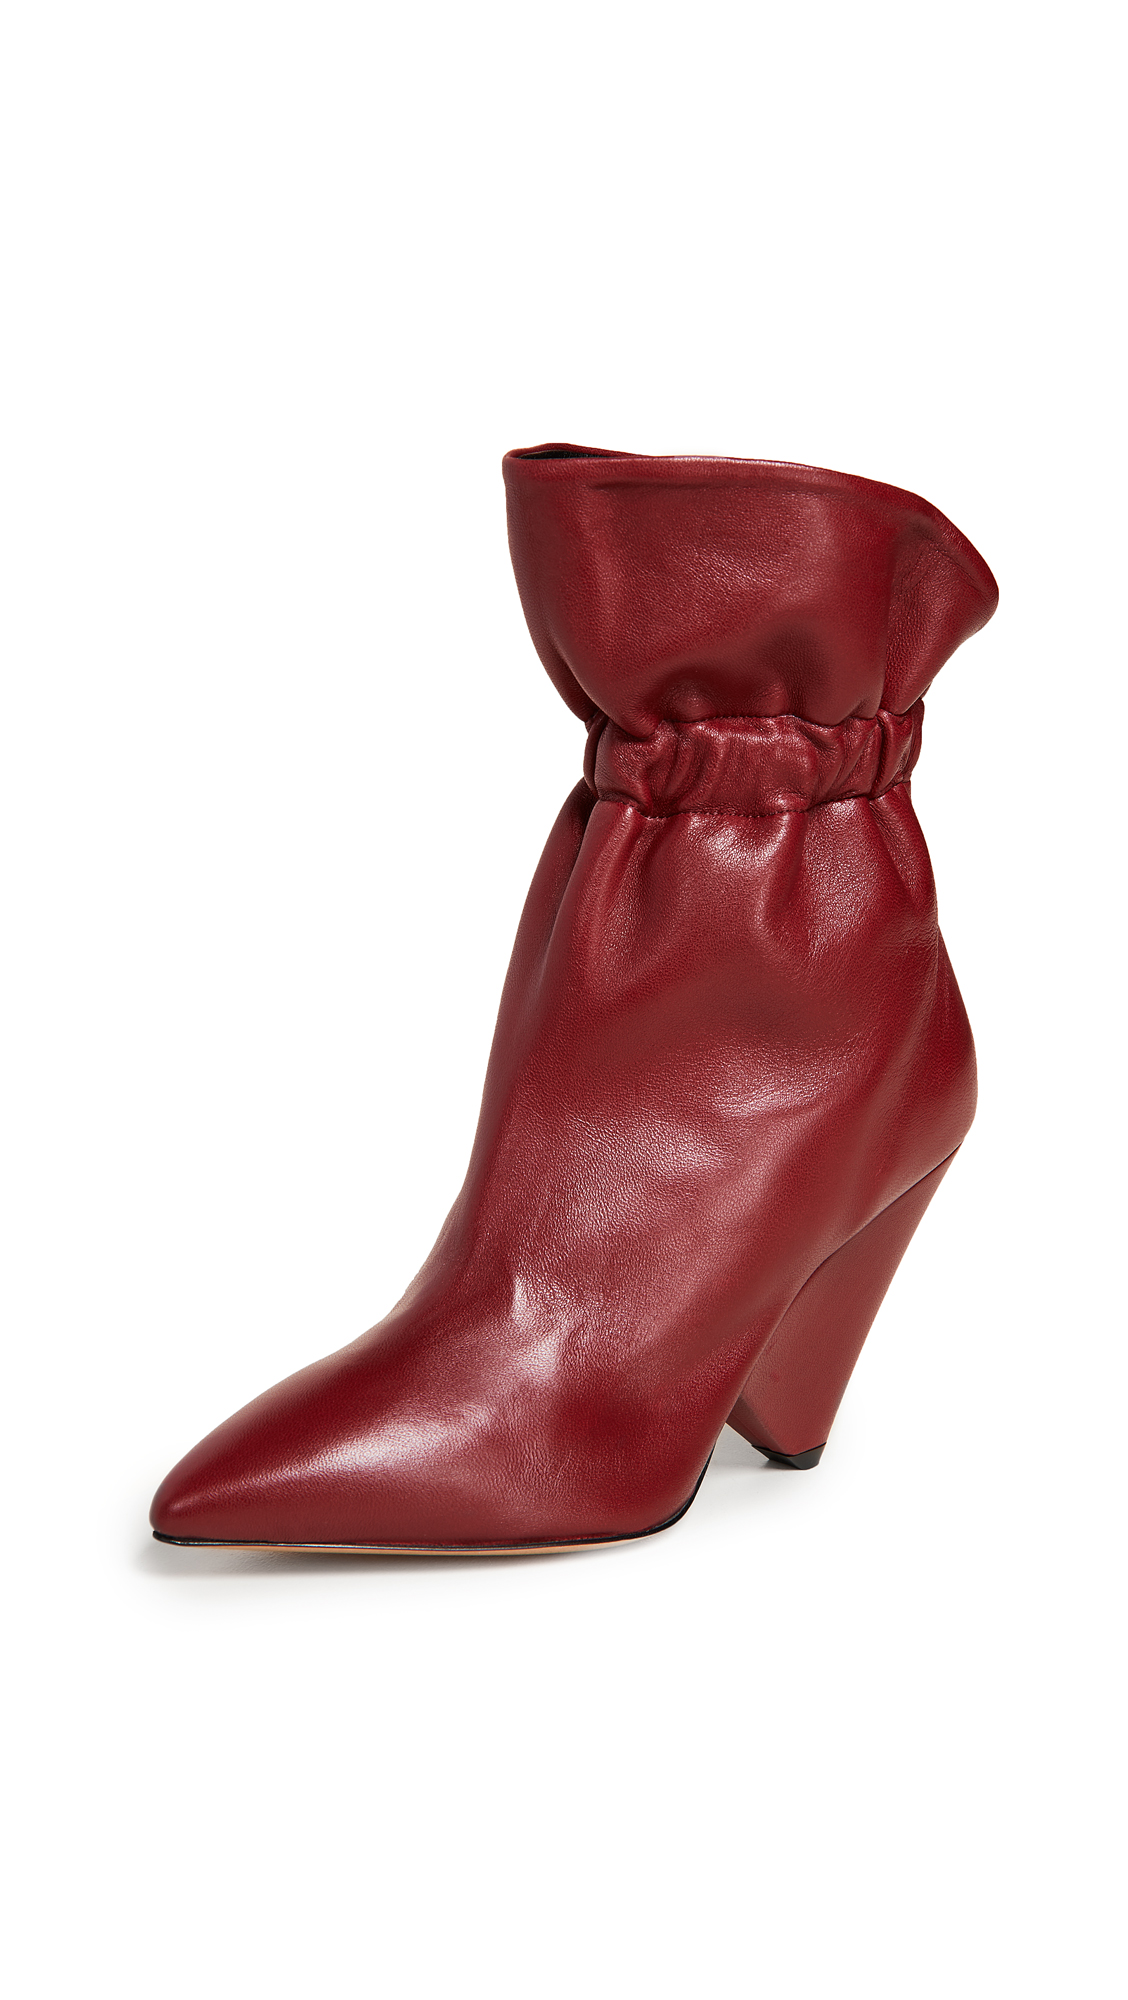 Isabel Marant Lileas Boots - Burgundy